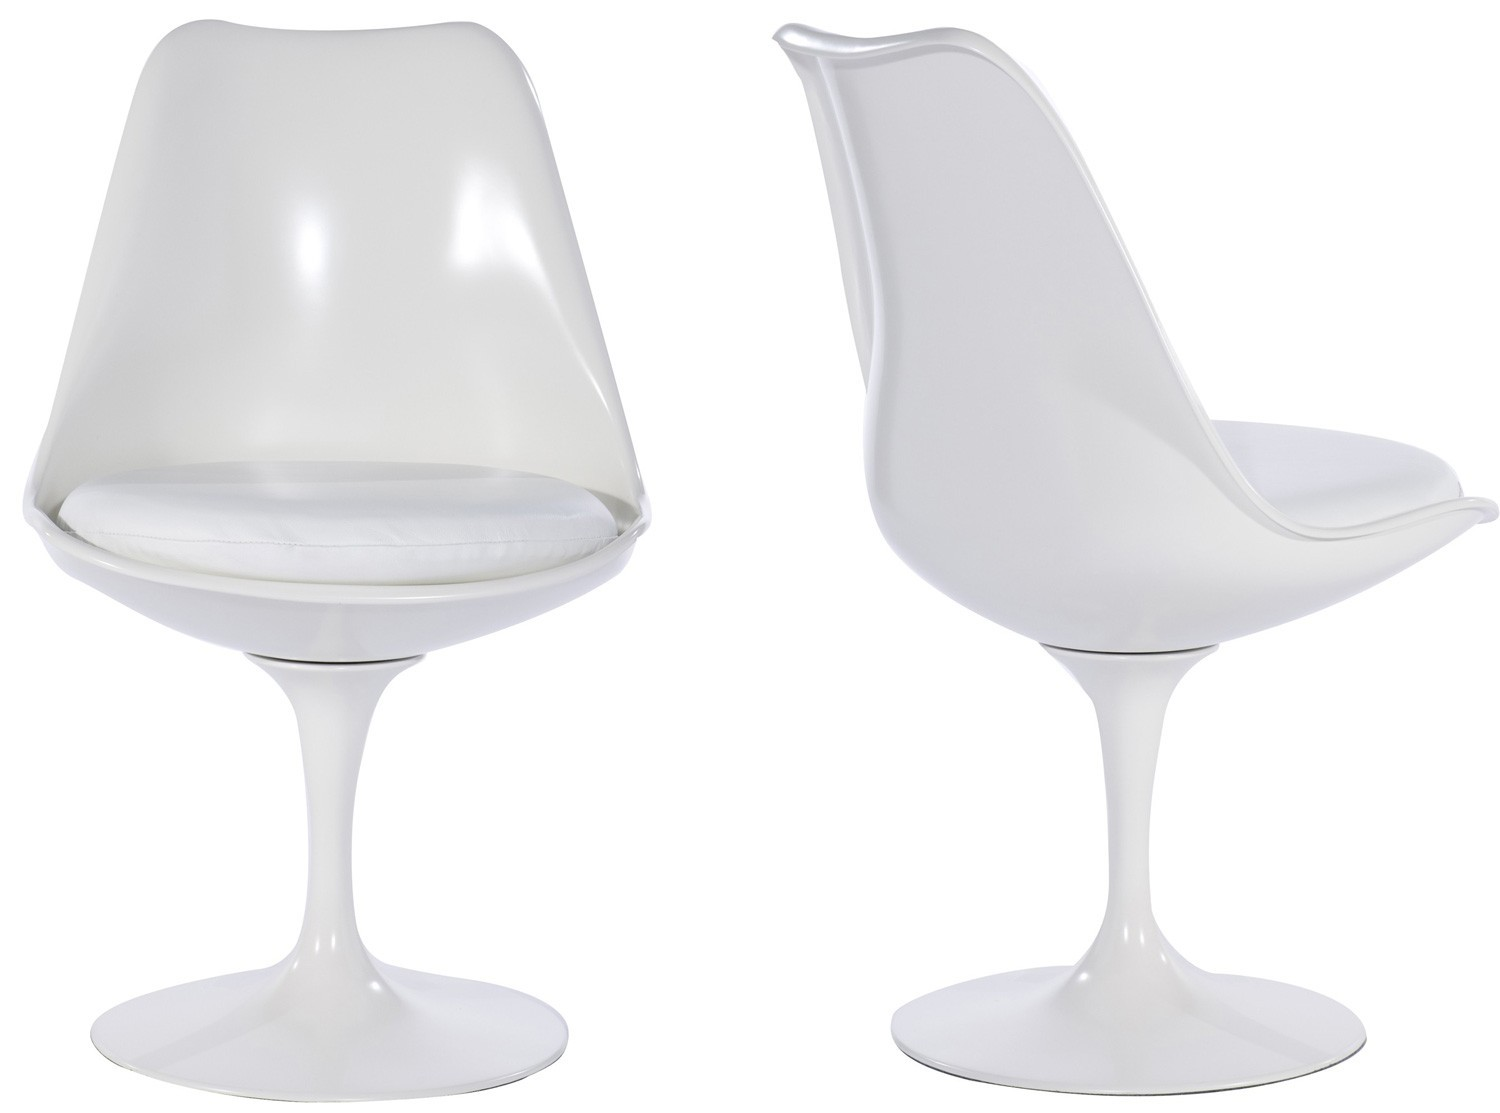 Tulip Chair - Molded ABS Plastic-White